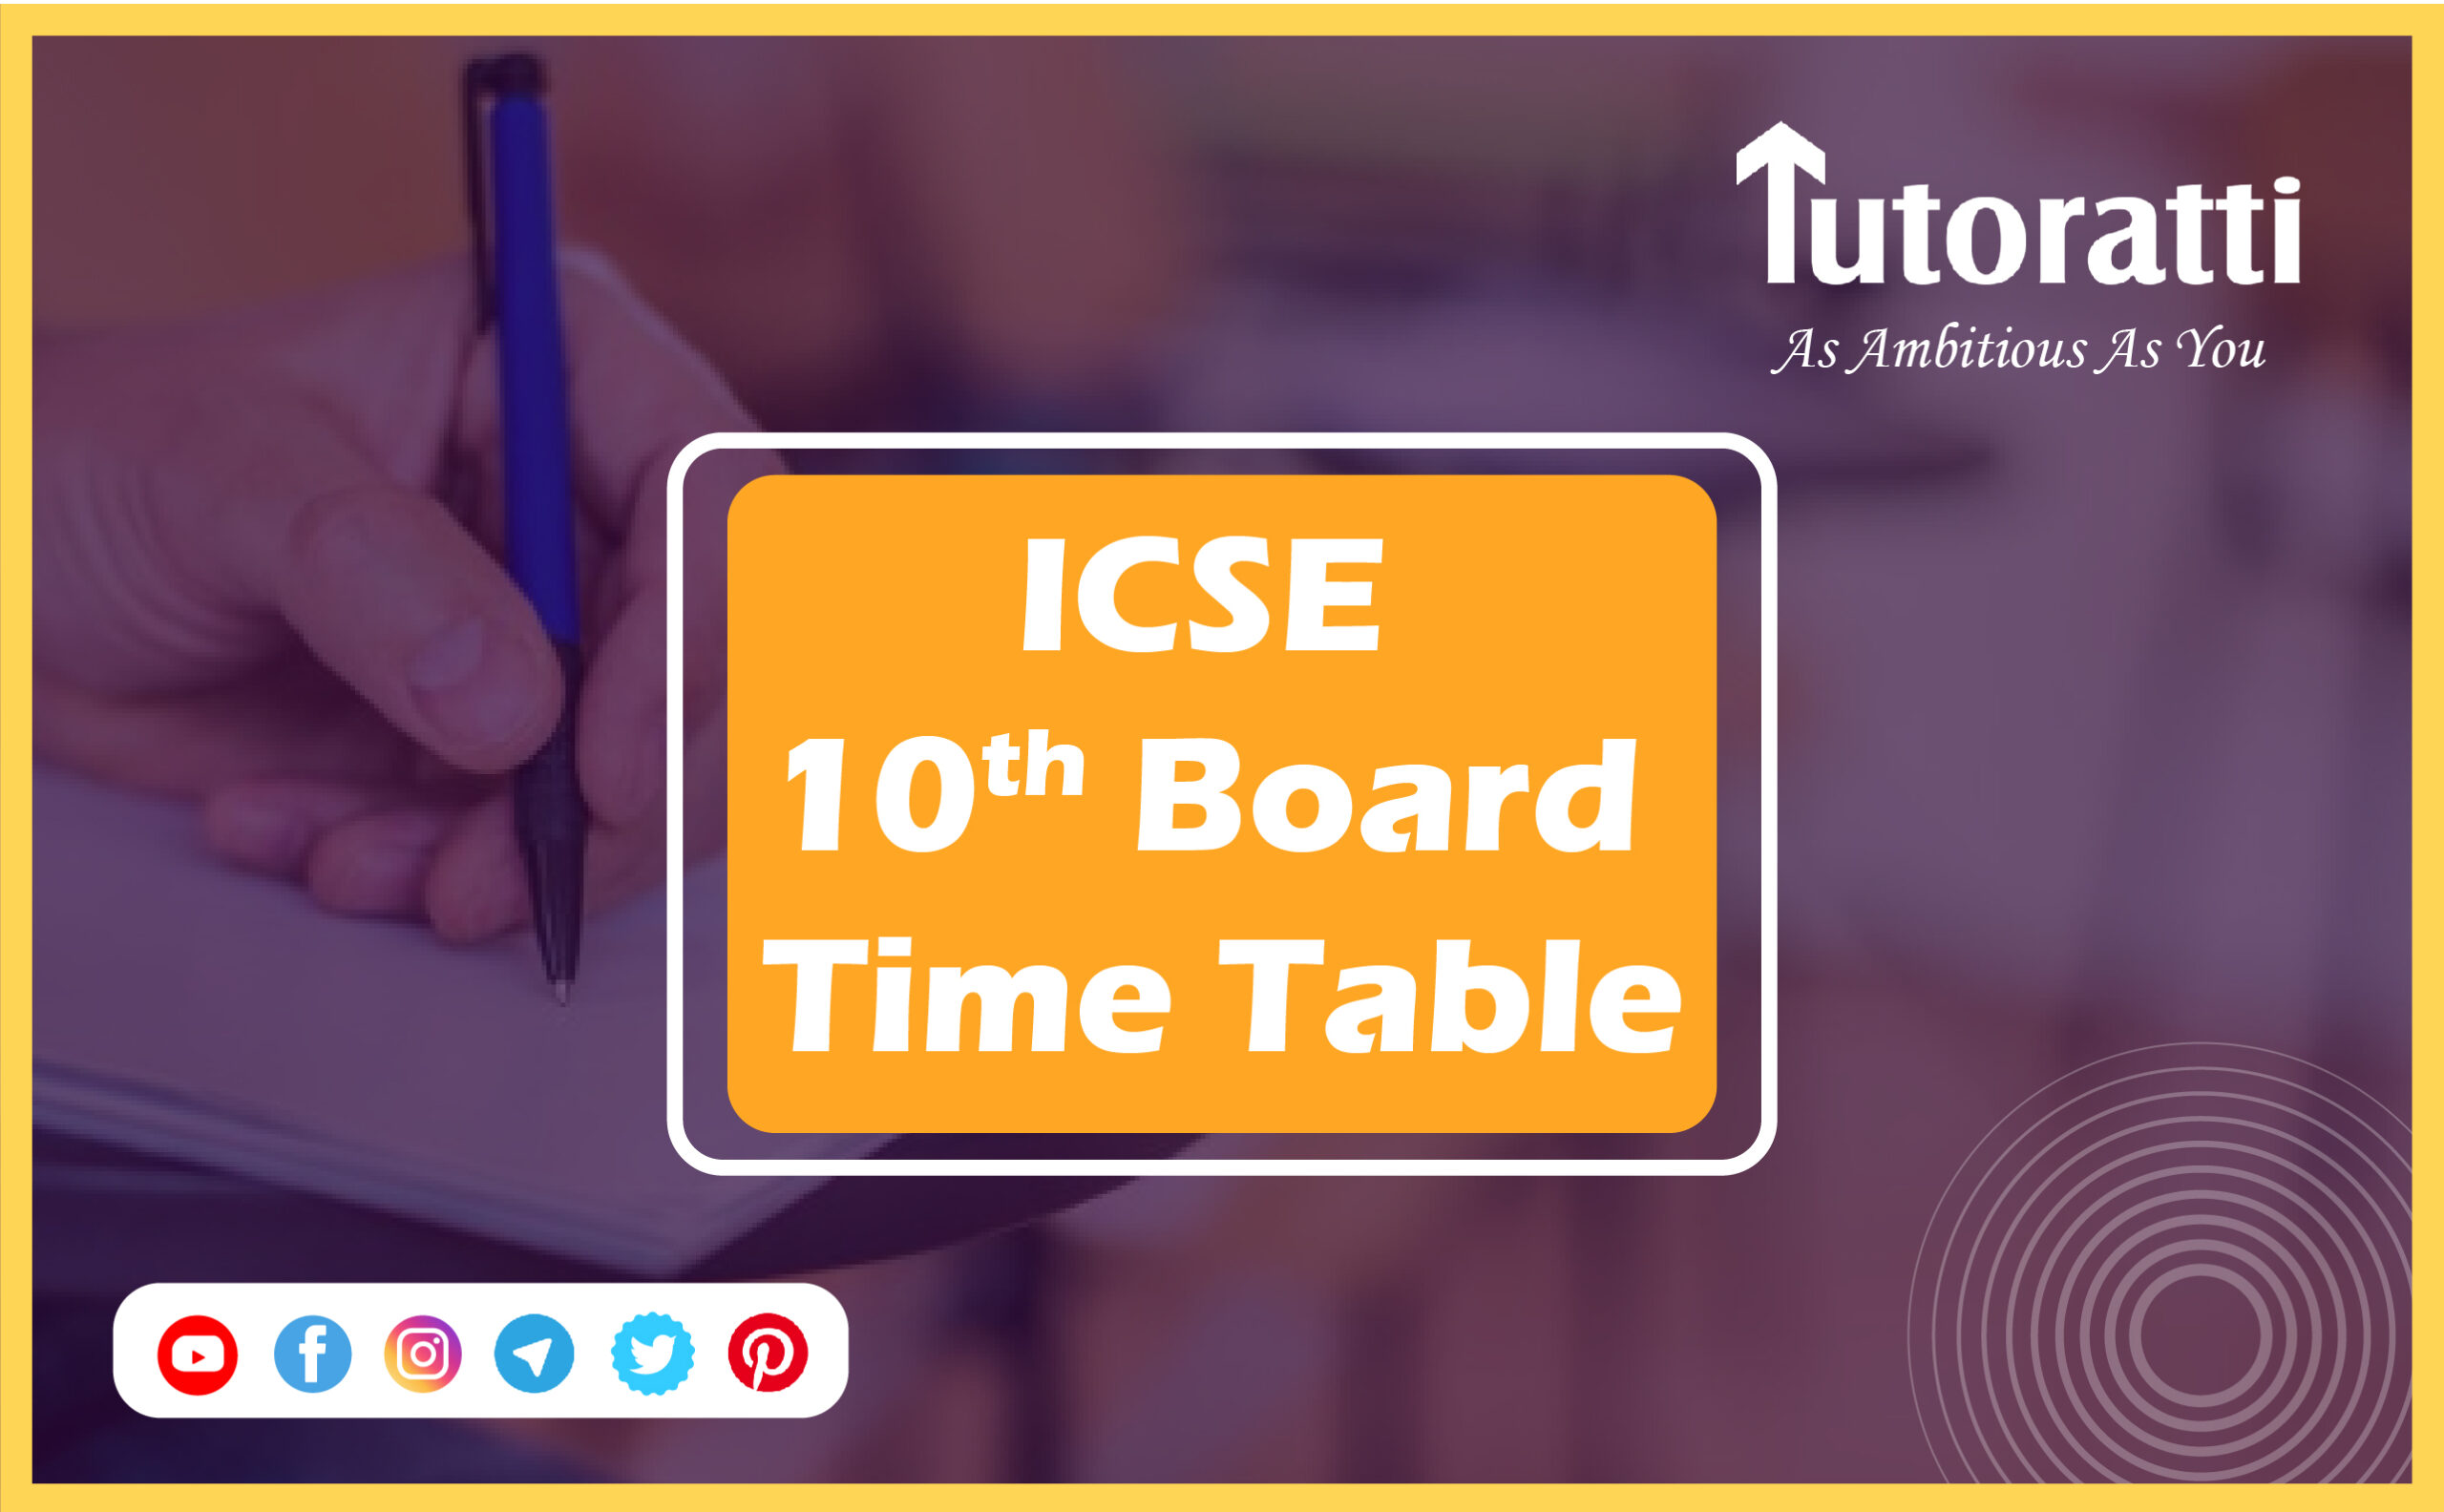 ICSE 10th Board Time Table